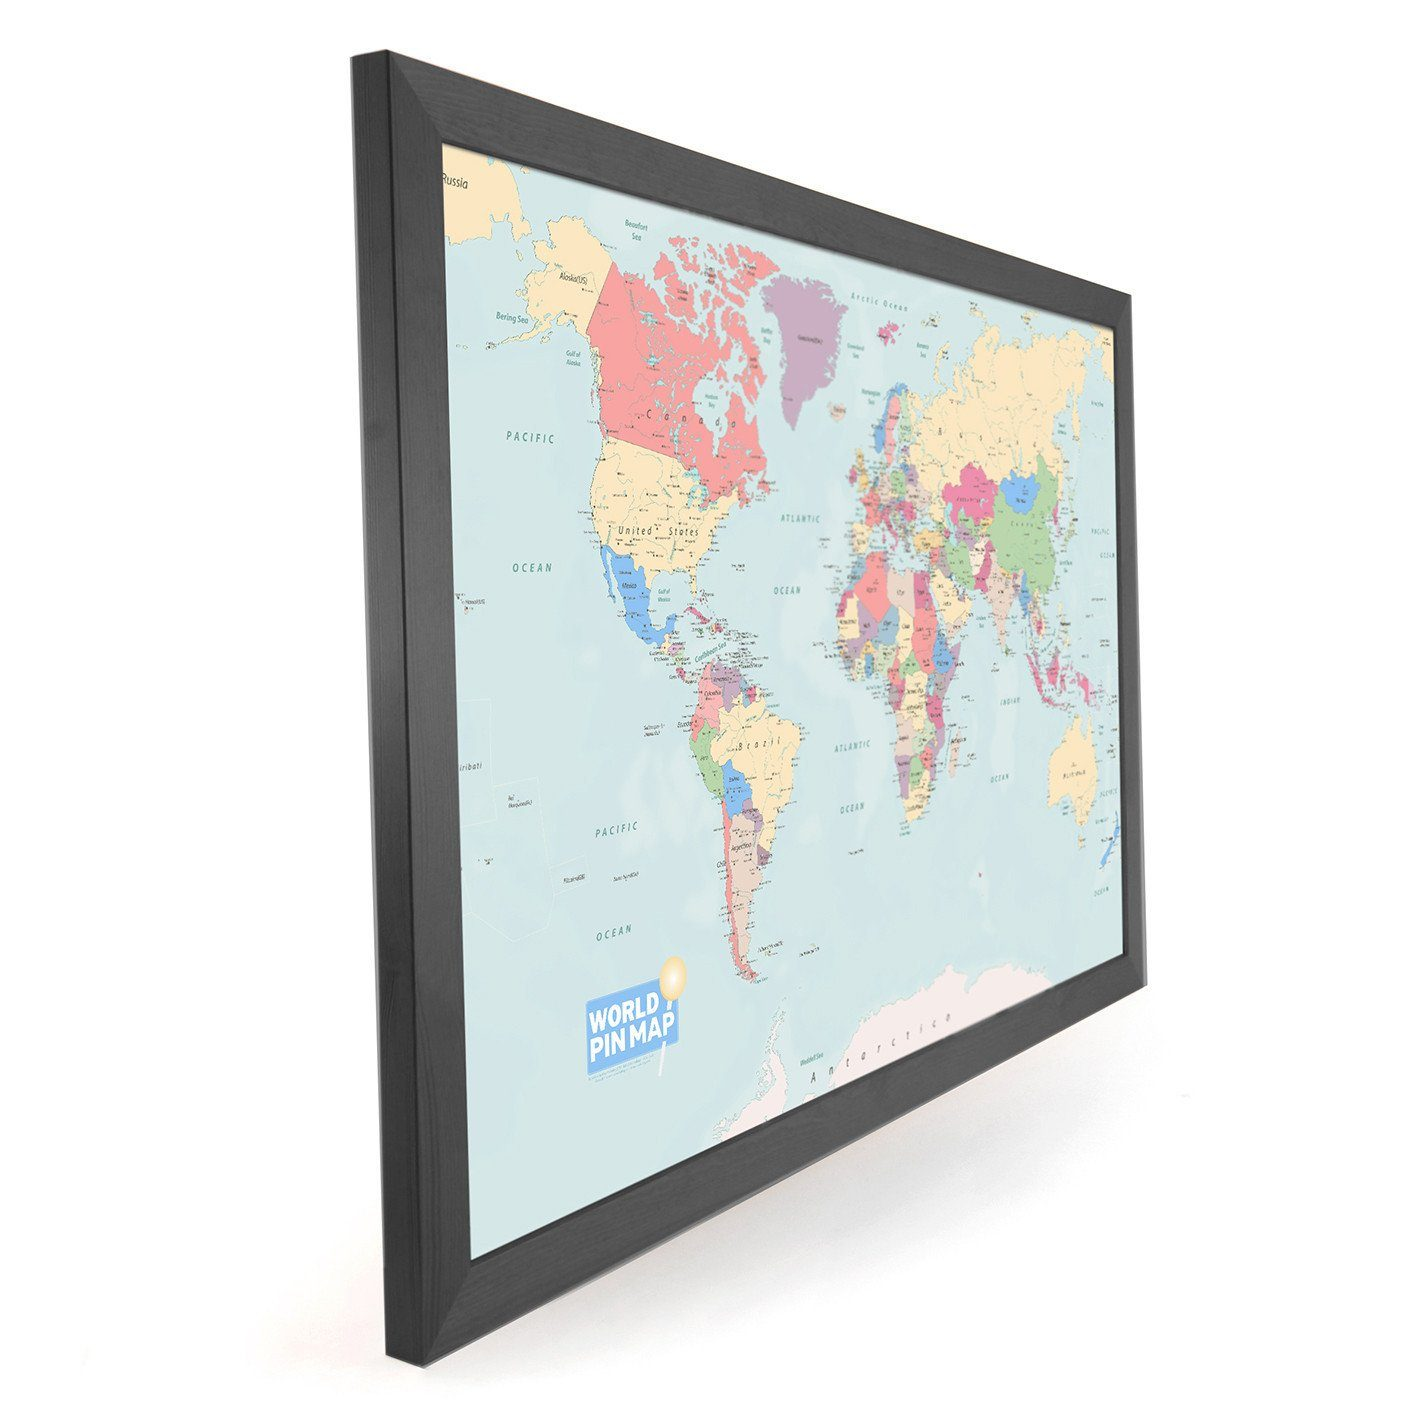 World map pinboard framed map of the world to plan and record map gift framed world pinboard map gumiabroncs Image collections